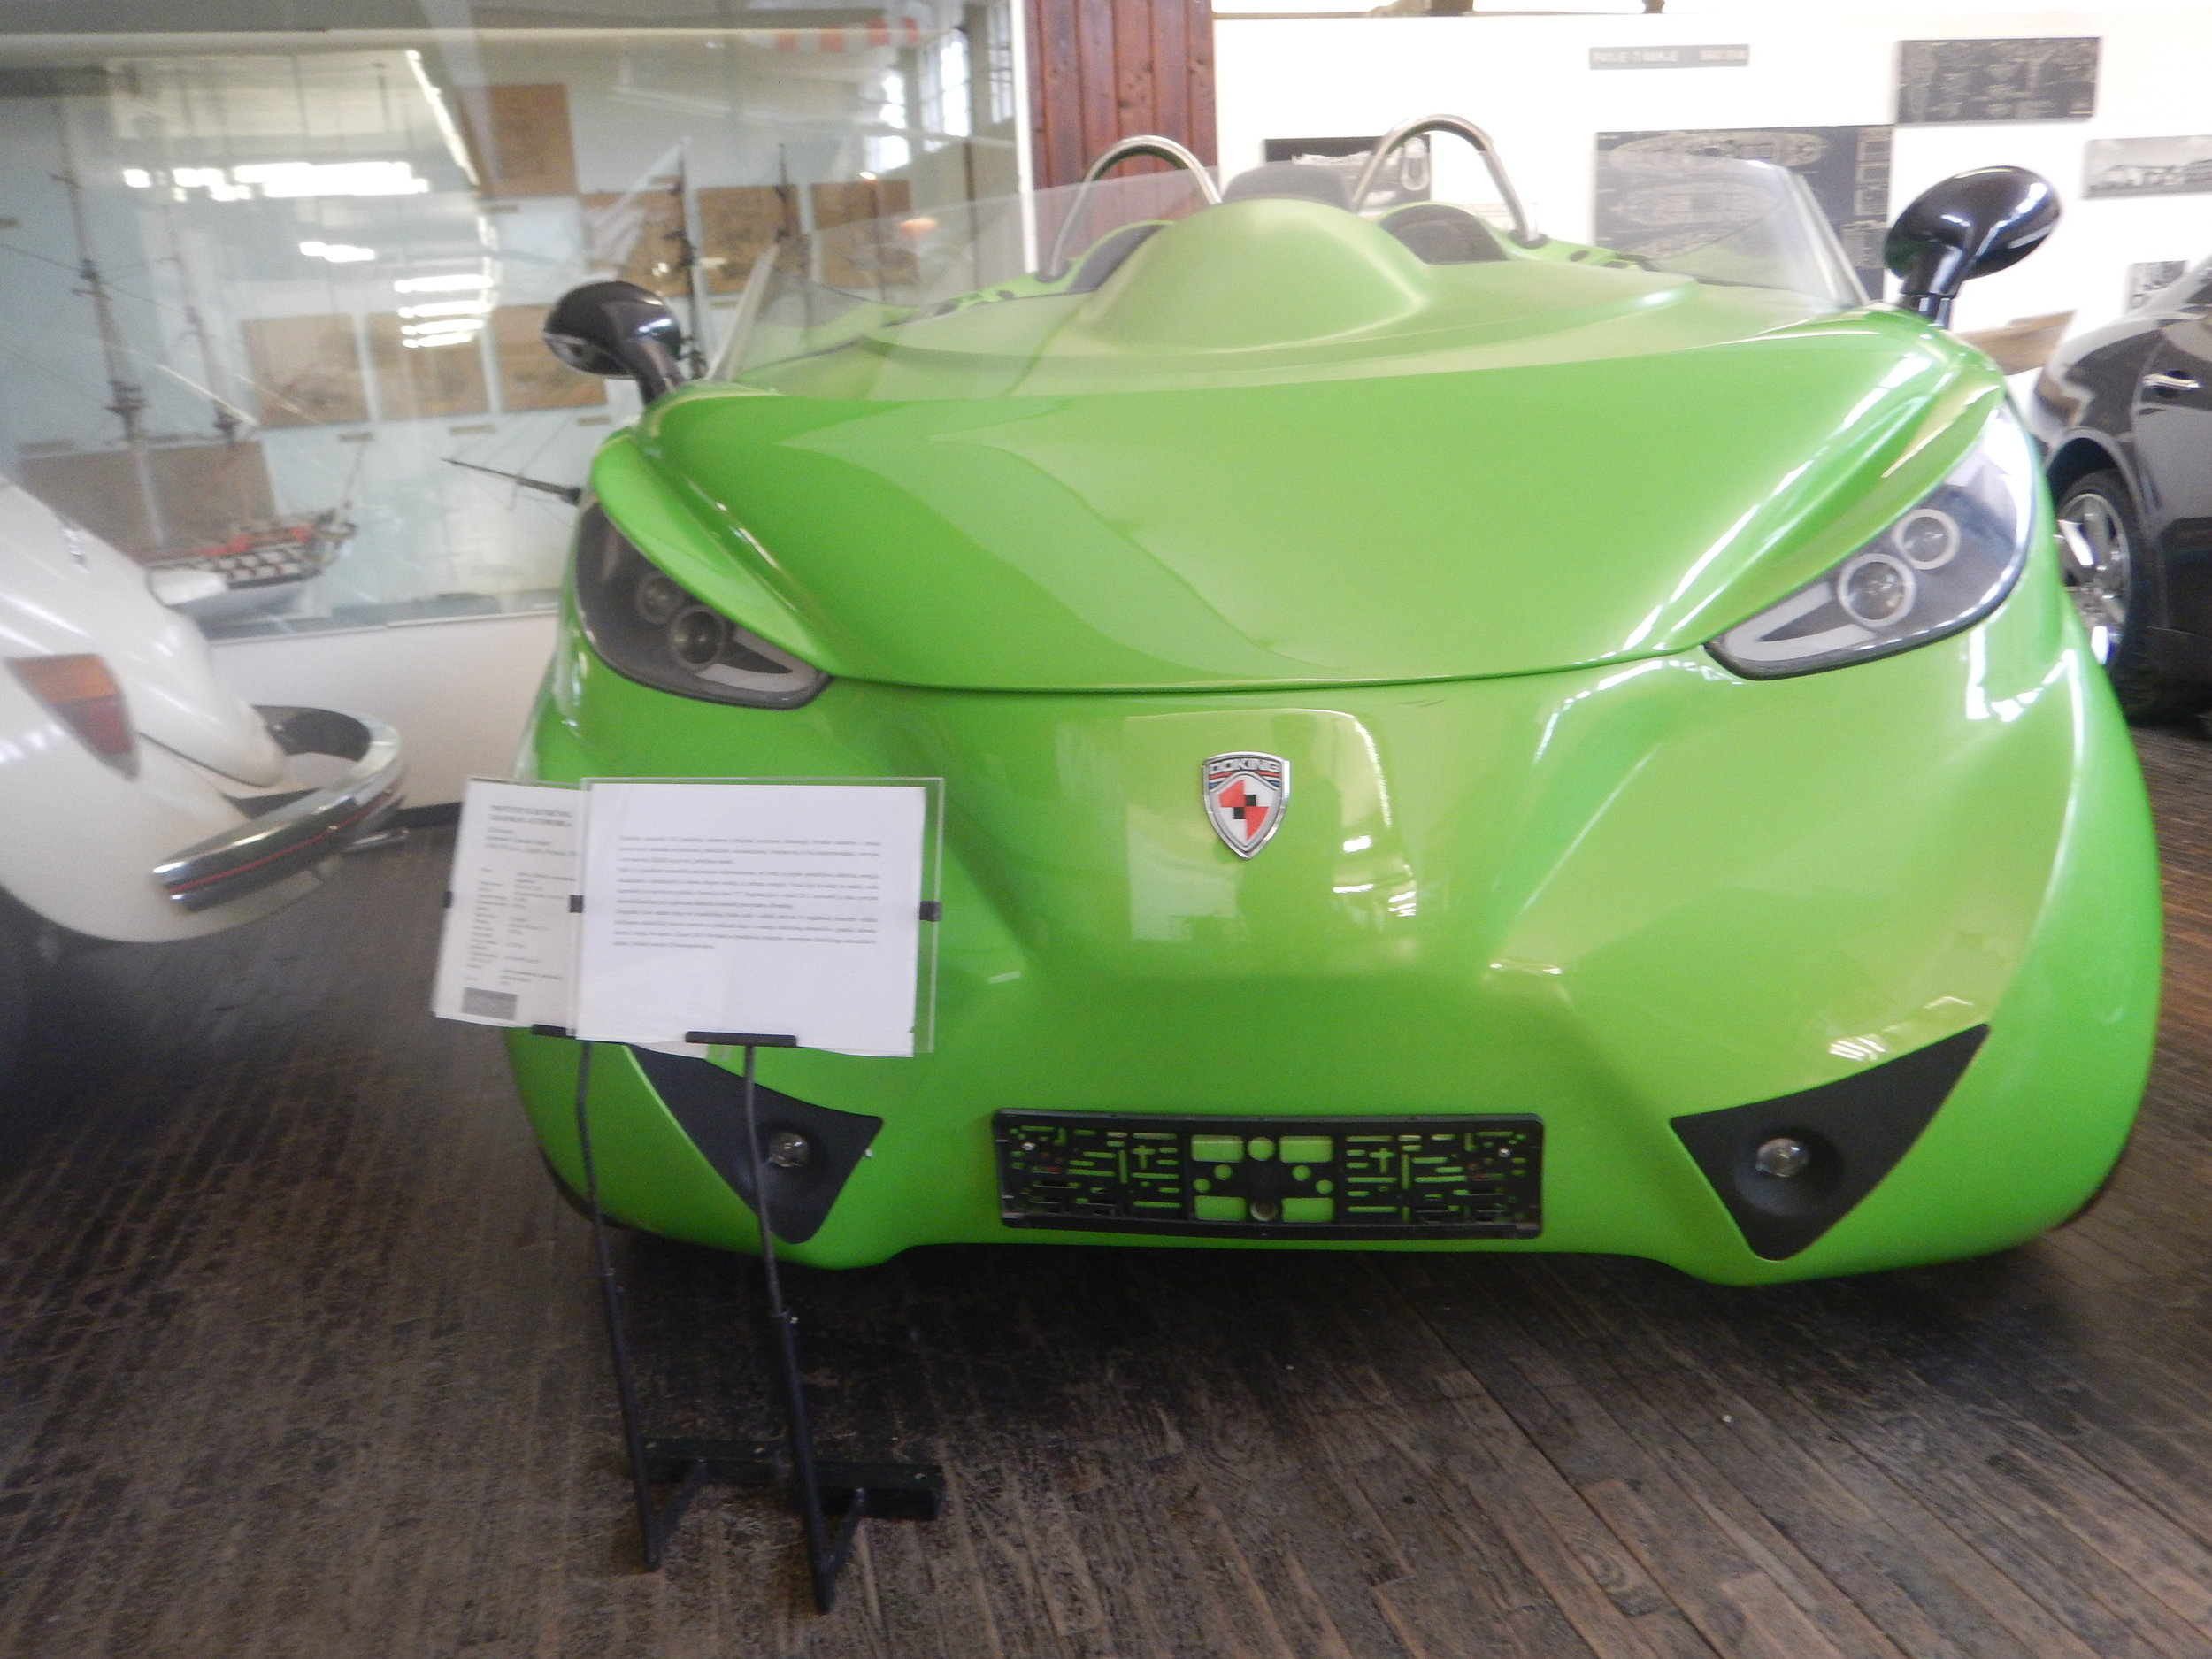 Croatias first green car. PS. It's electric